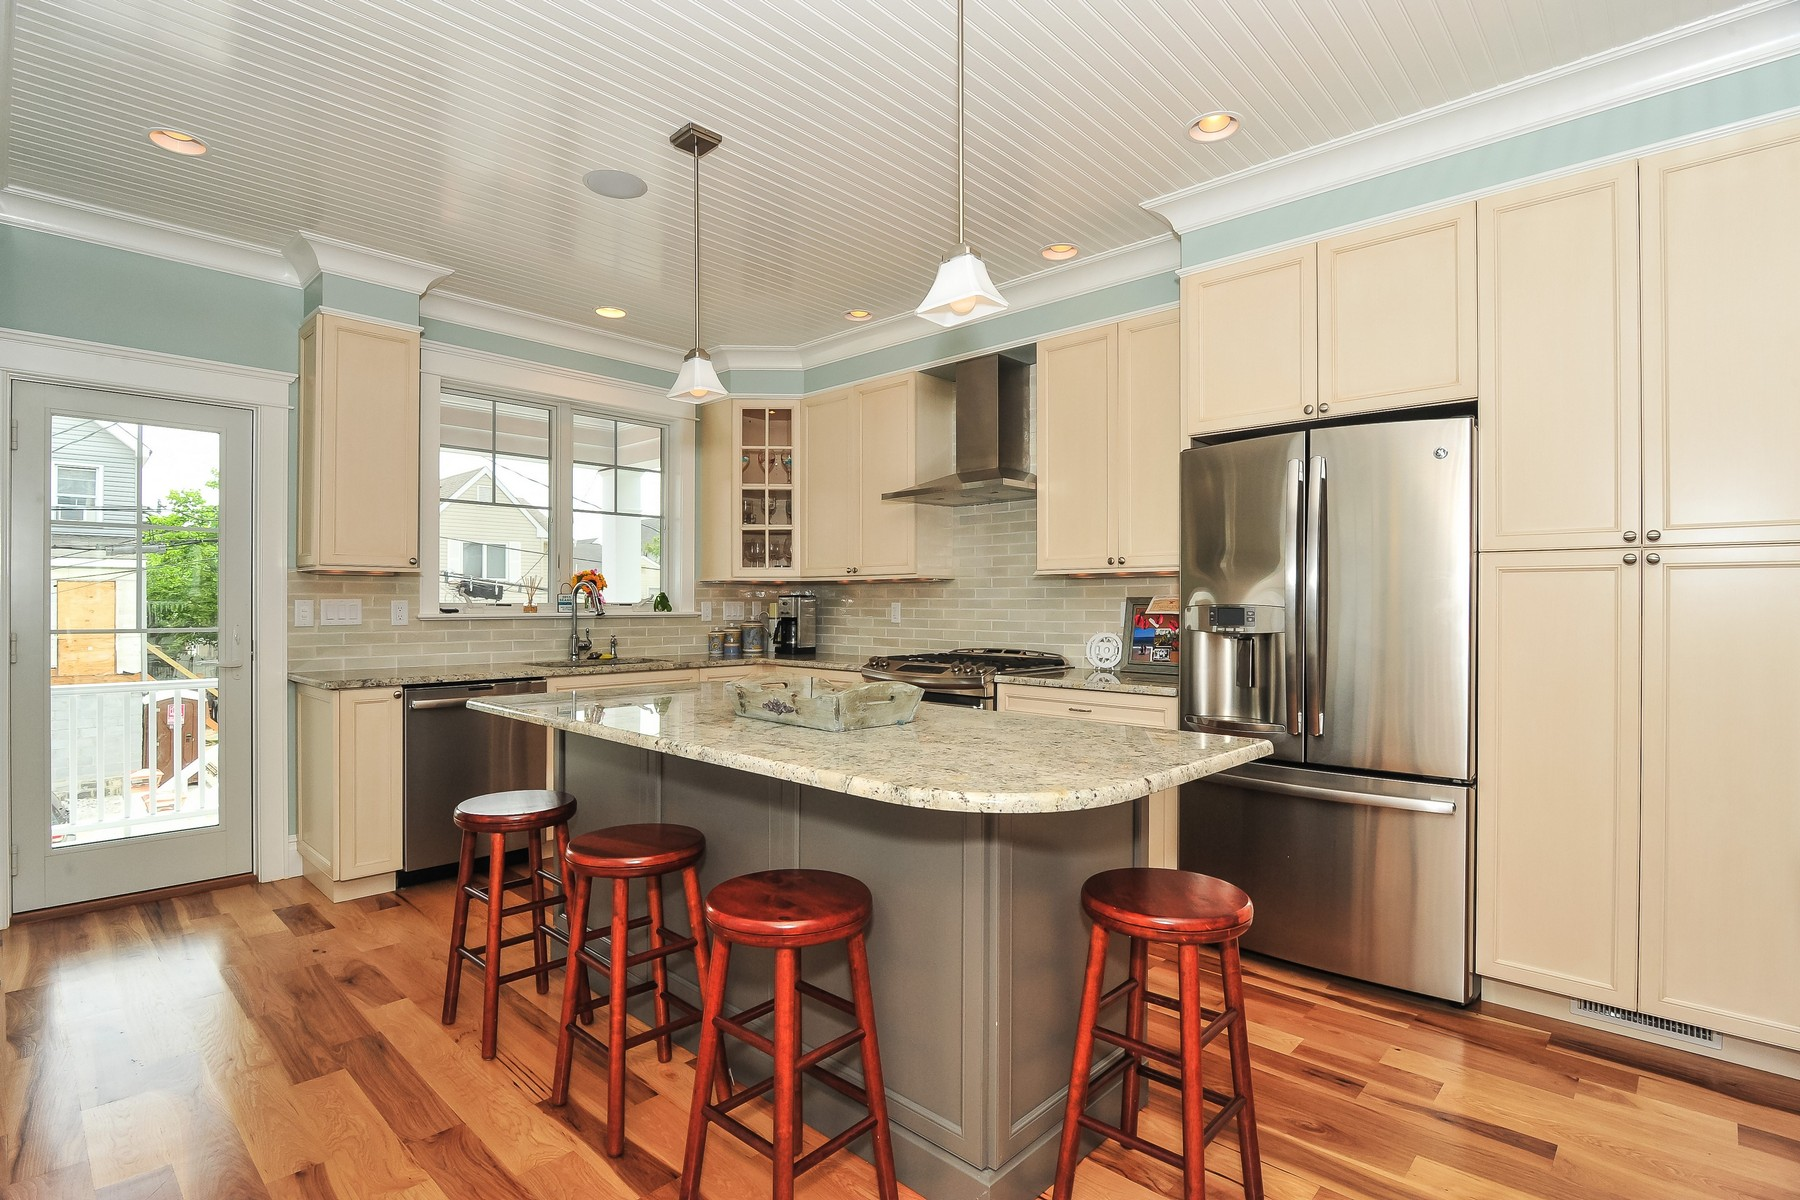 Single Family Home for Rent at Summer Getaway 14 New Street Sea Bright, New Jersey 07760 United States